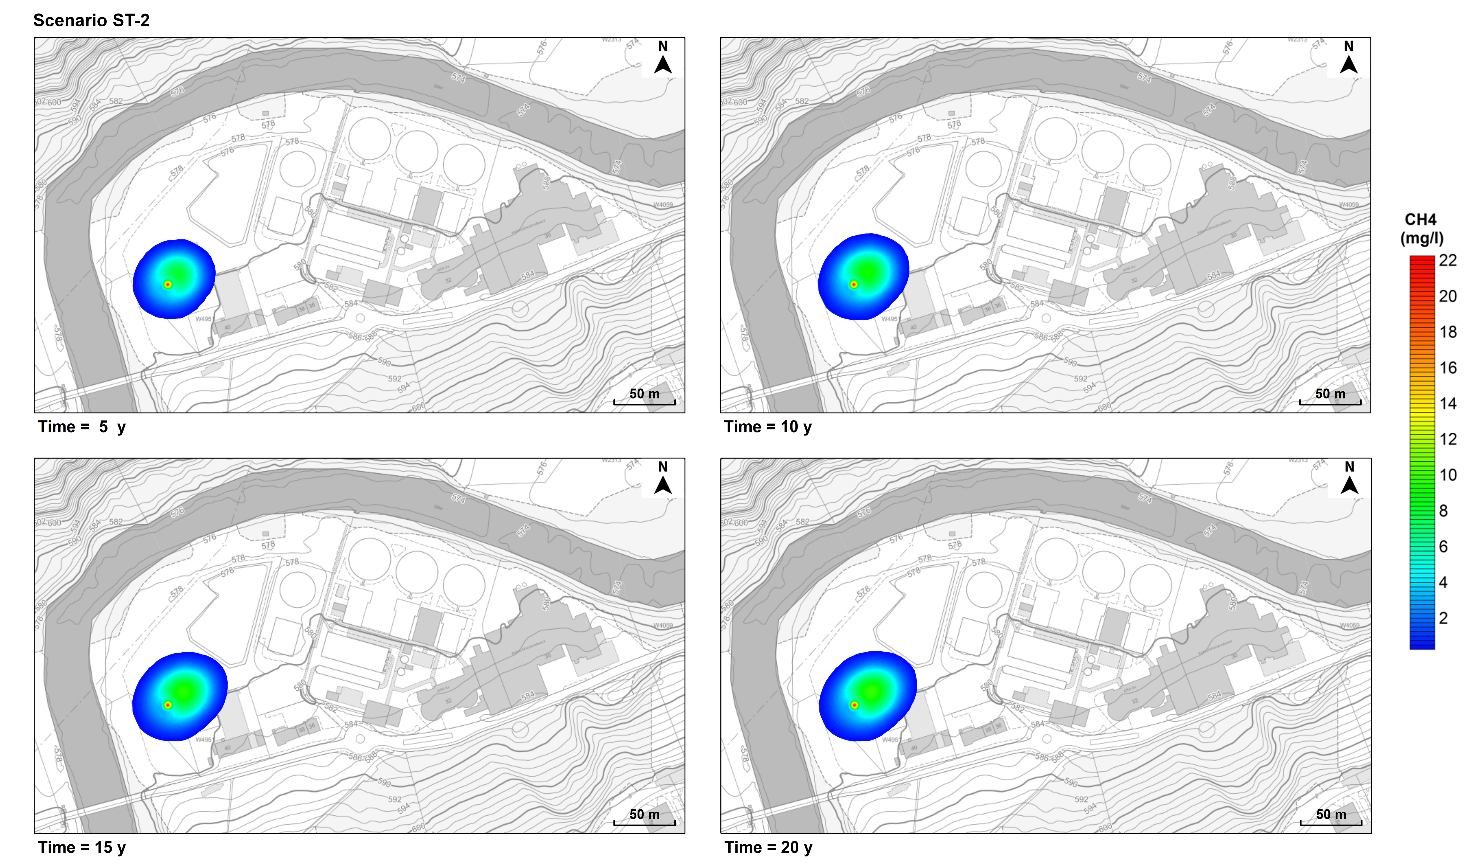 Figure 3. Predicted dissolved methane plume over time (5, 10, 15, and 20 years). Scenario ST-2. Background images taken from Geoportal St. Gallen (https://www.geoportal.ch/st_gallen).